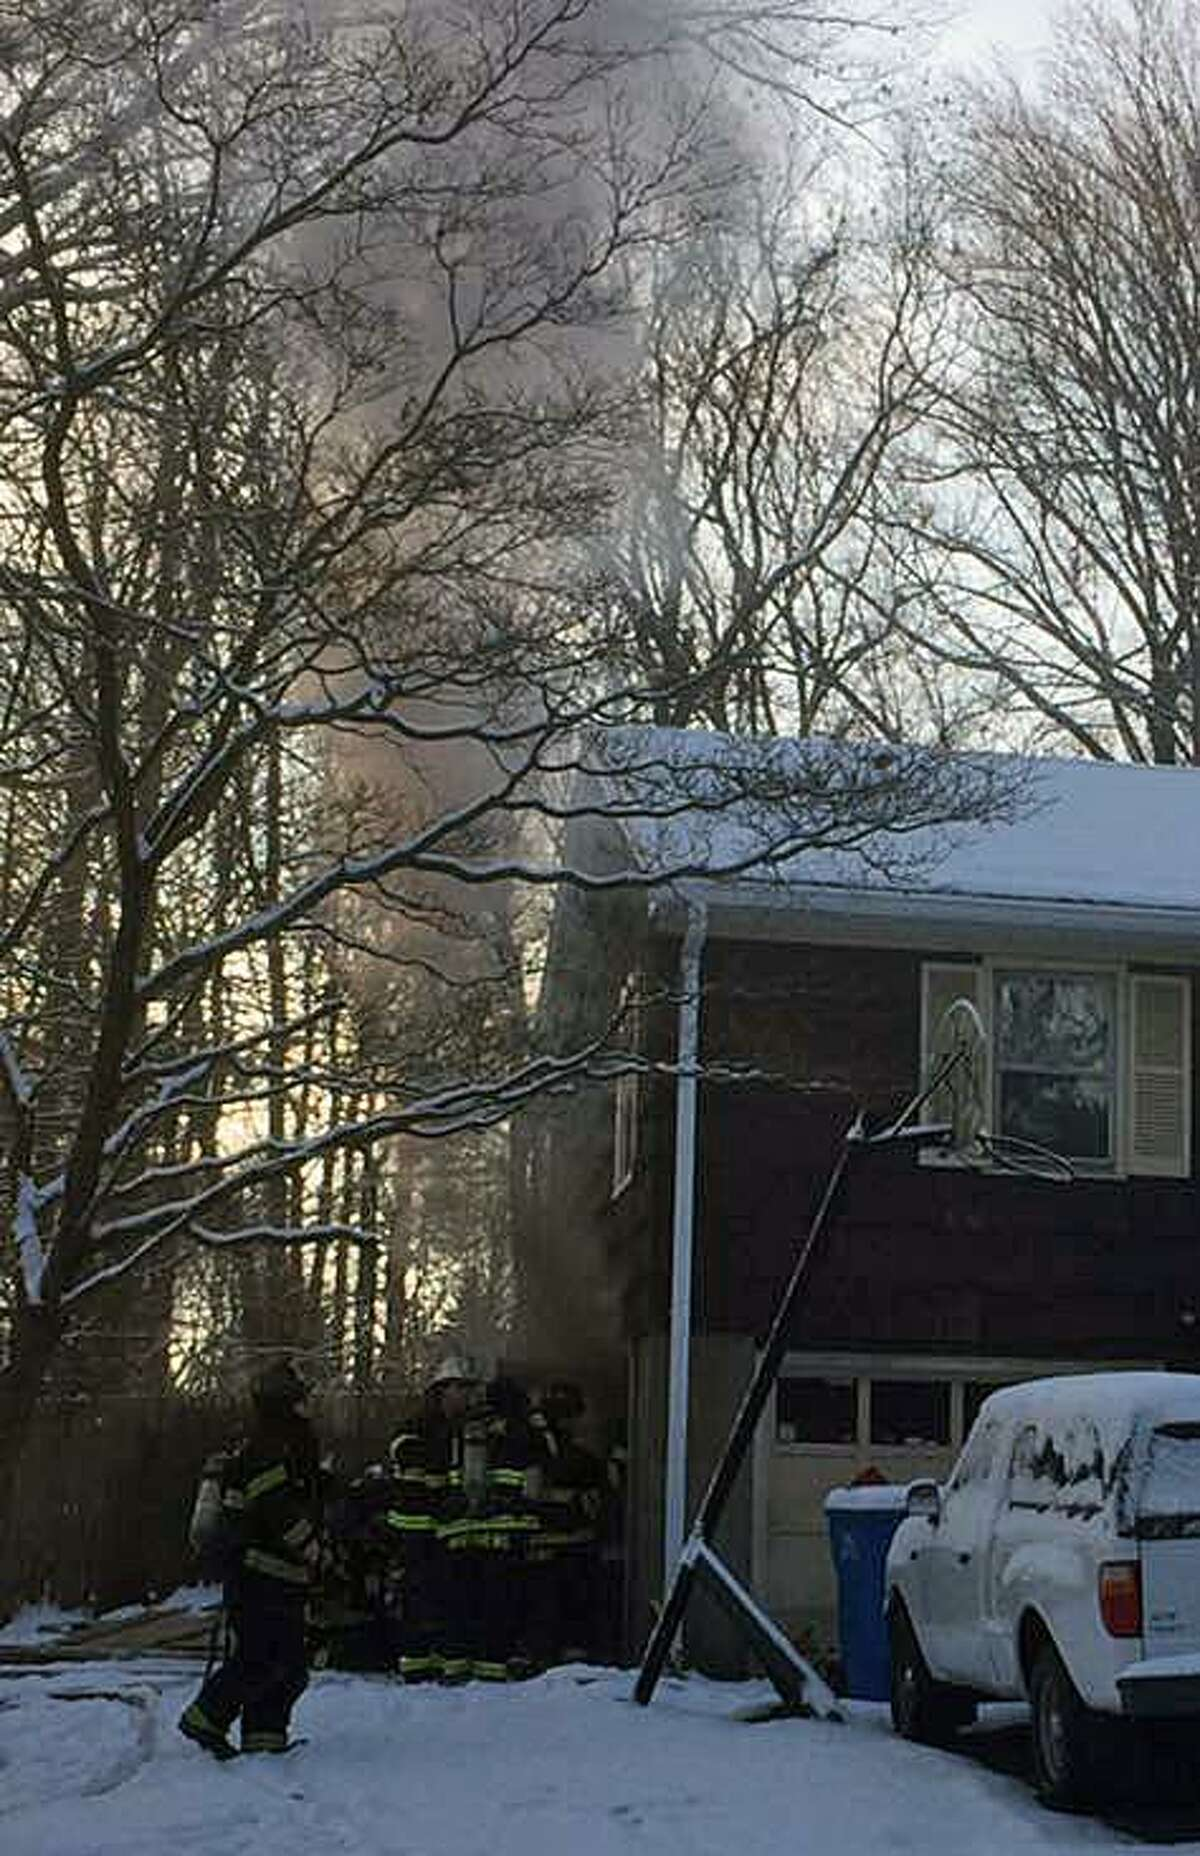 The Monroe Fire Department responded to Osborne Lane on Saturday, Dec. 16, 2017, for smoke coming from a residence. While en route, firefighters received an additional call about a structure fire just down the road. Both fires were extinguished and no injuries were reported.